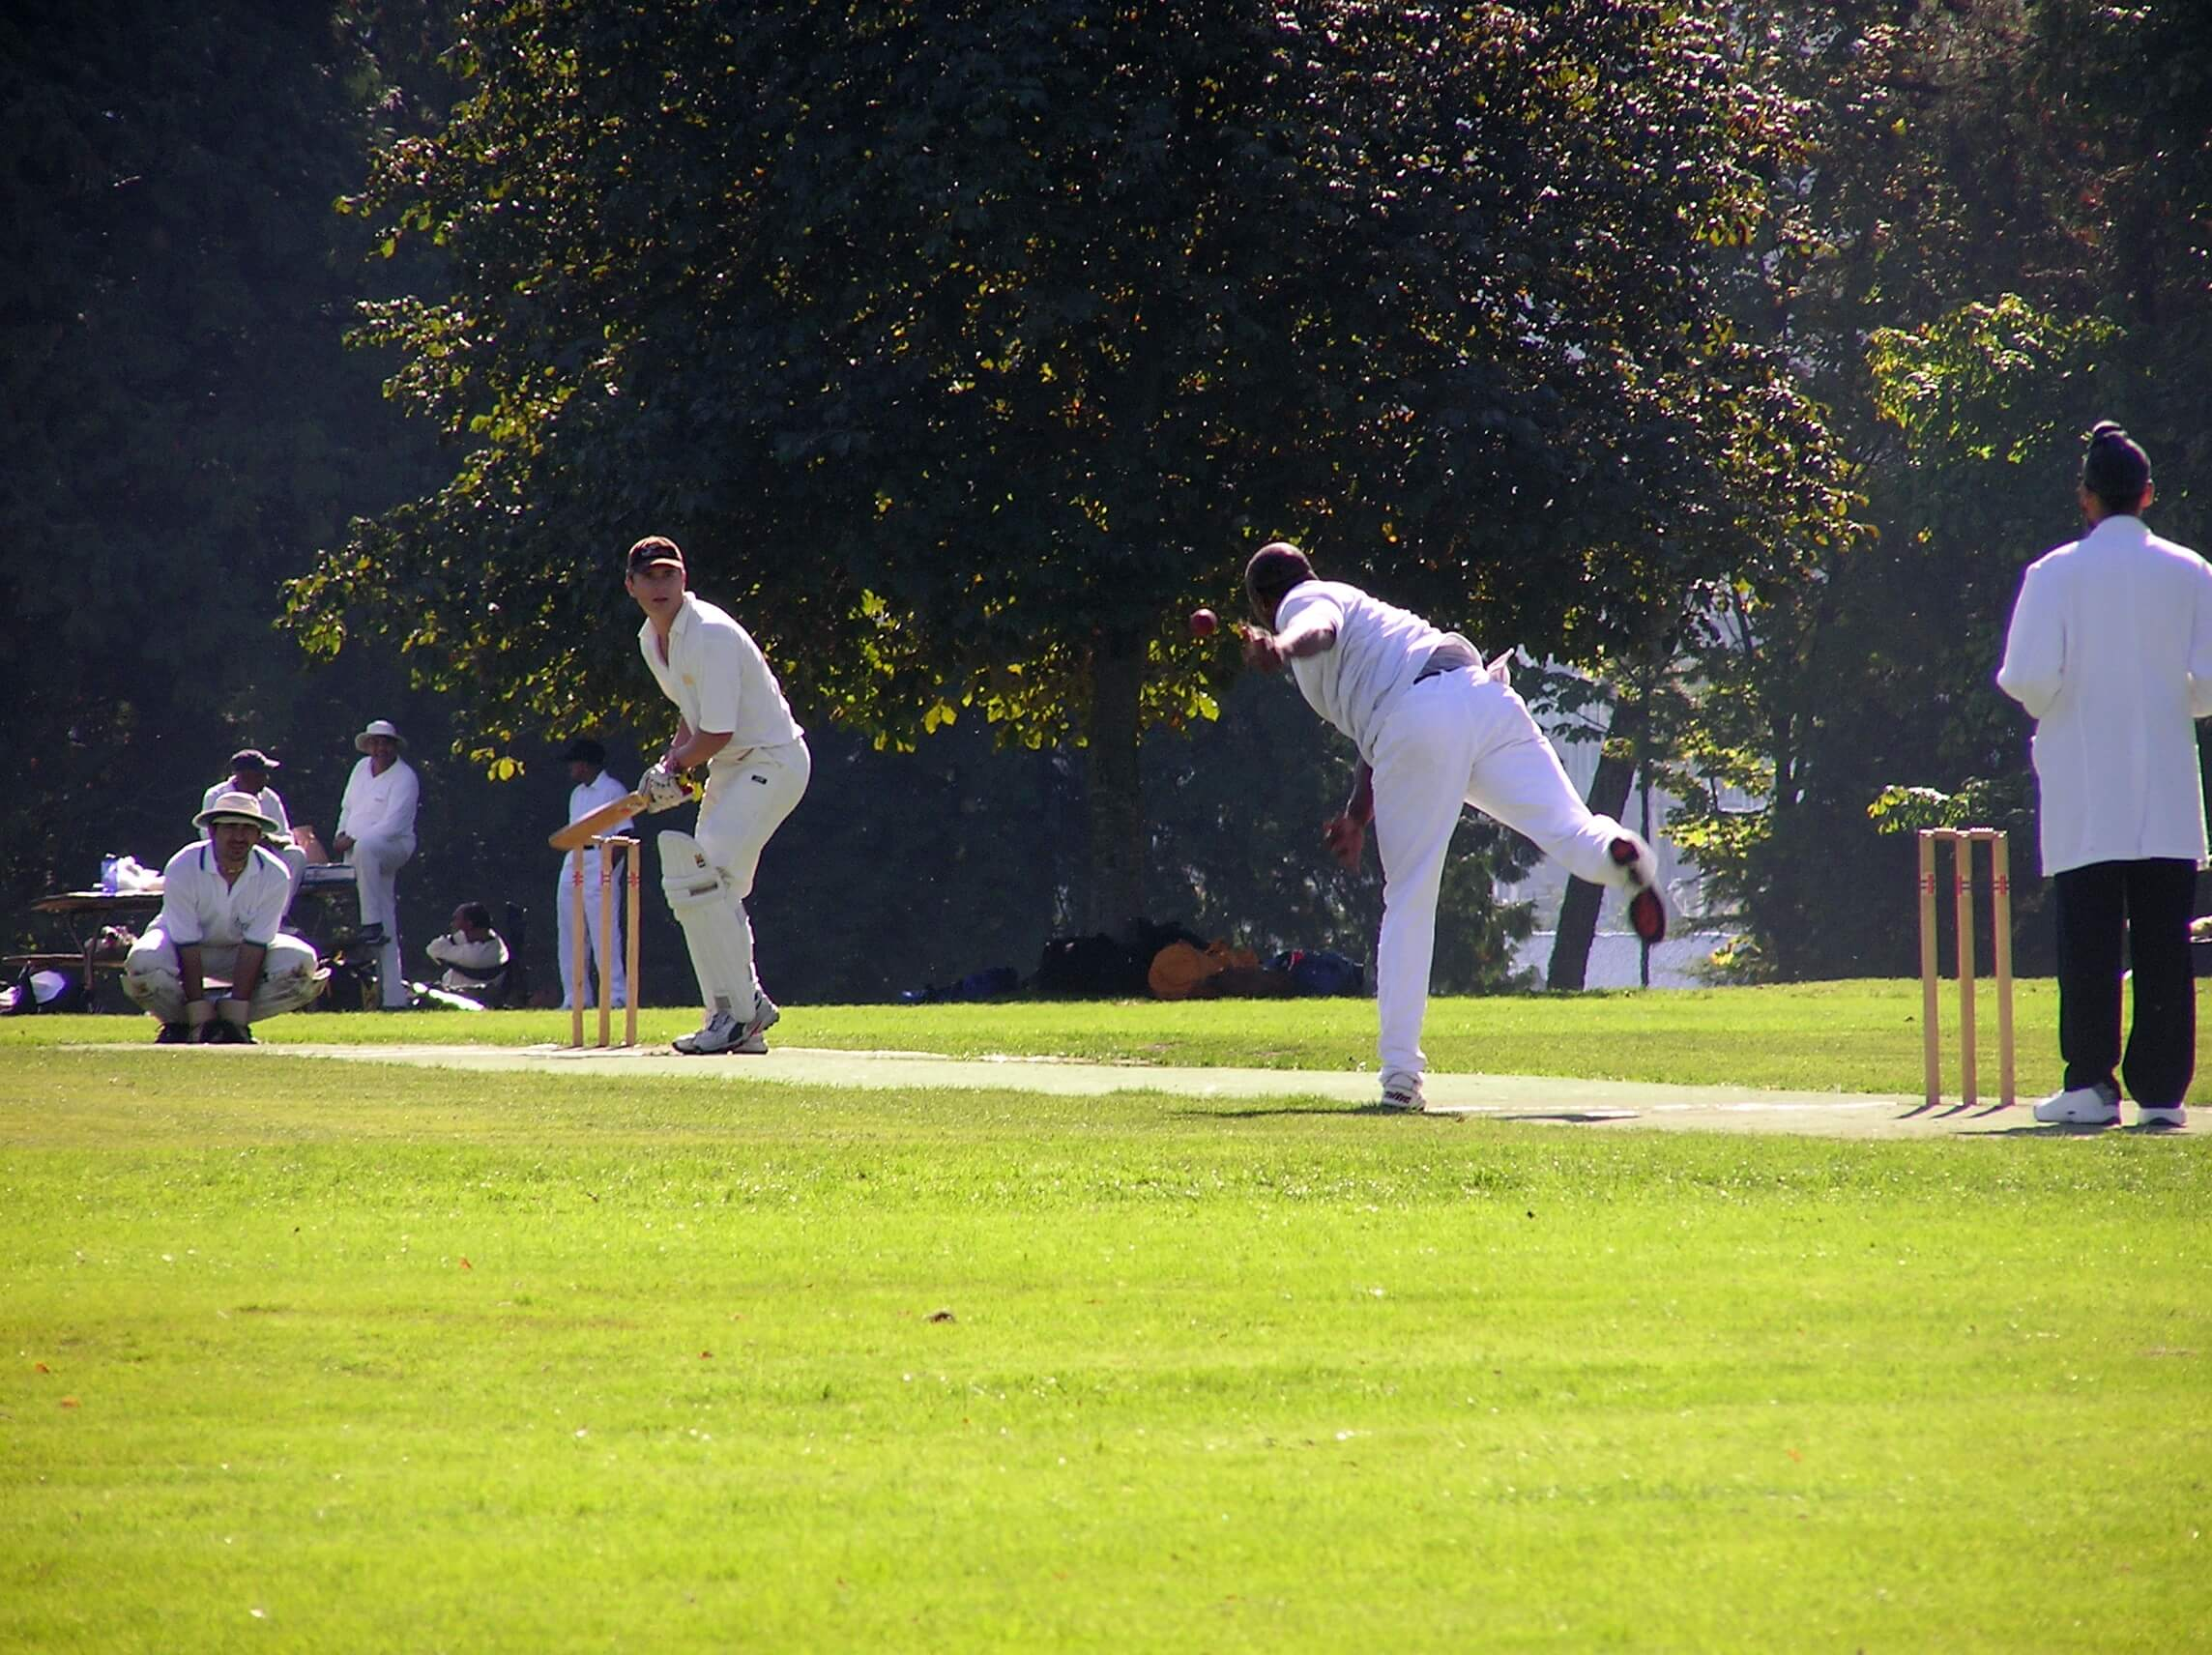 Teams on a cricket tour play in Stanley Park